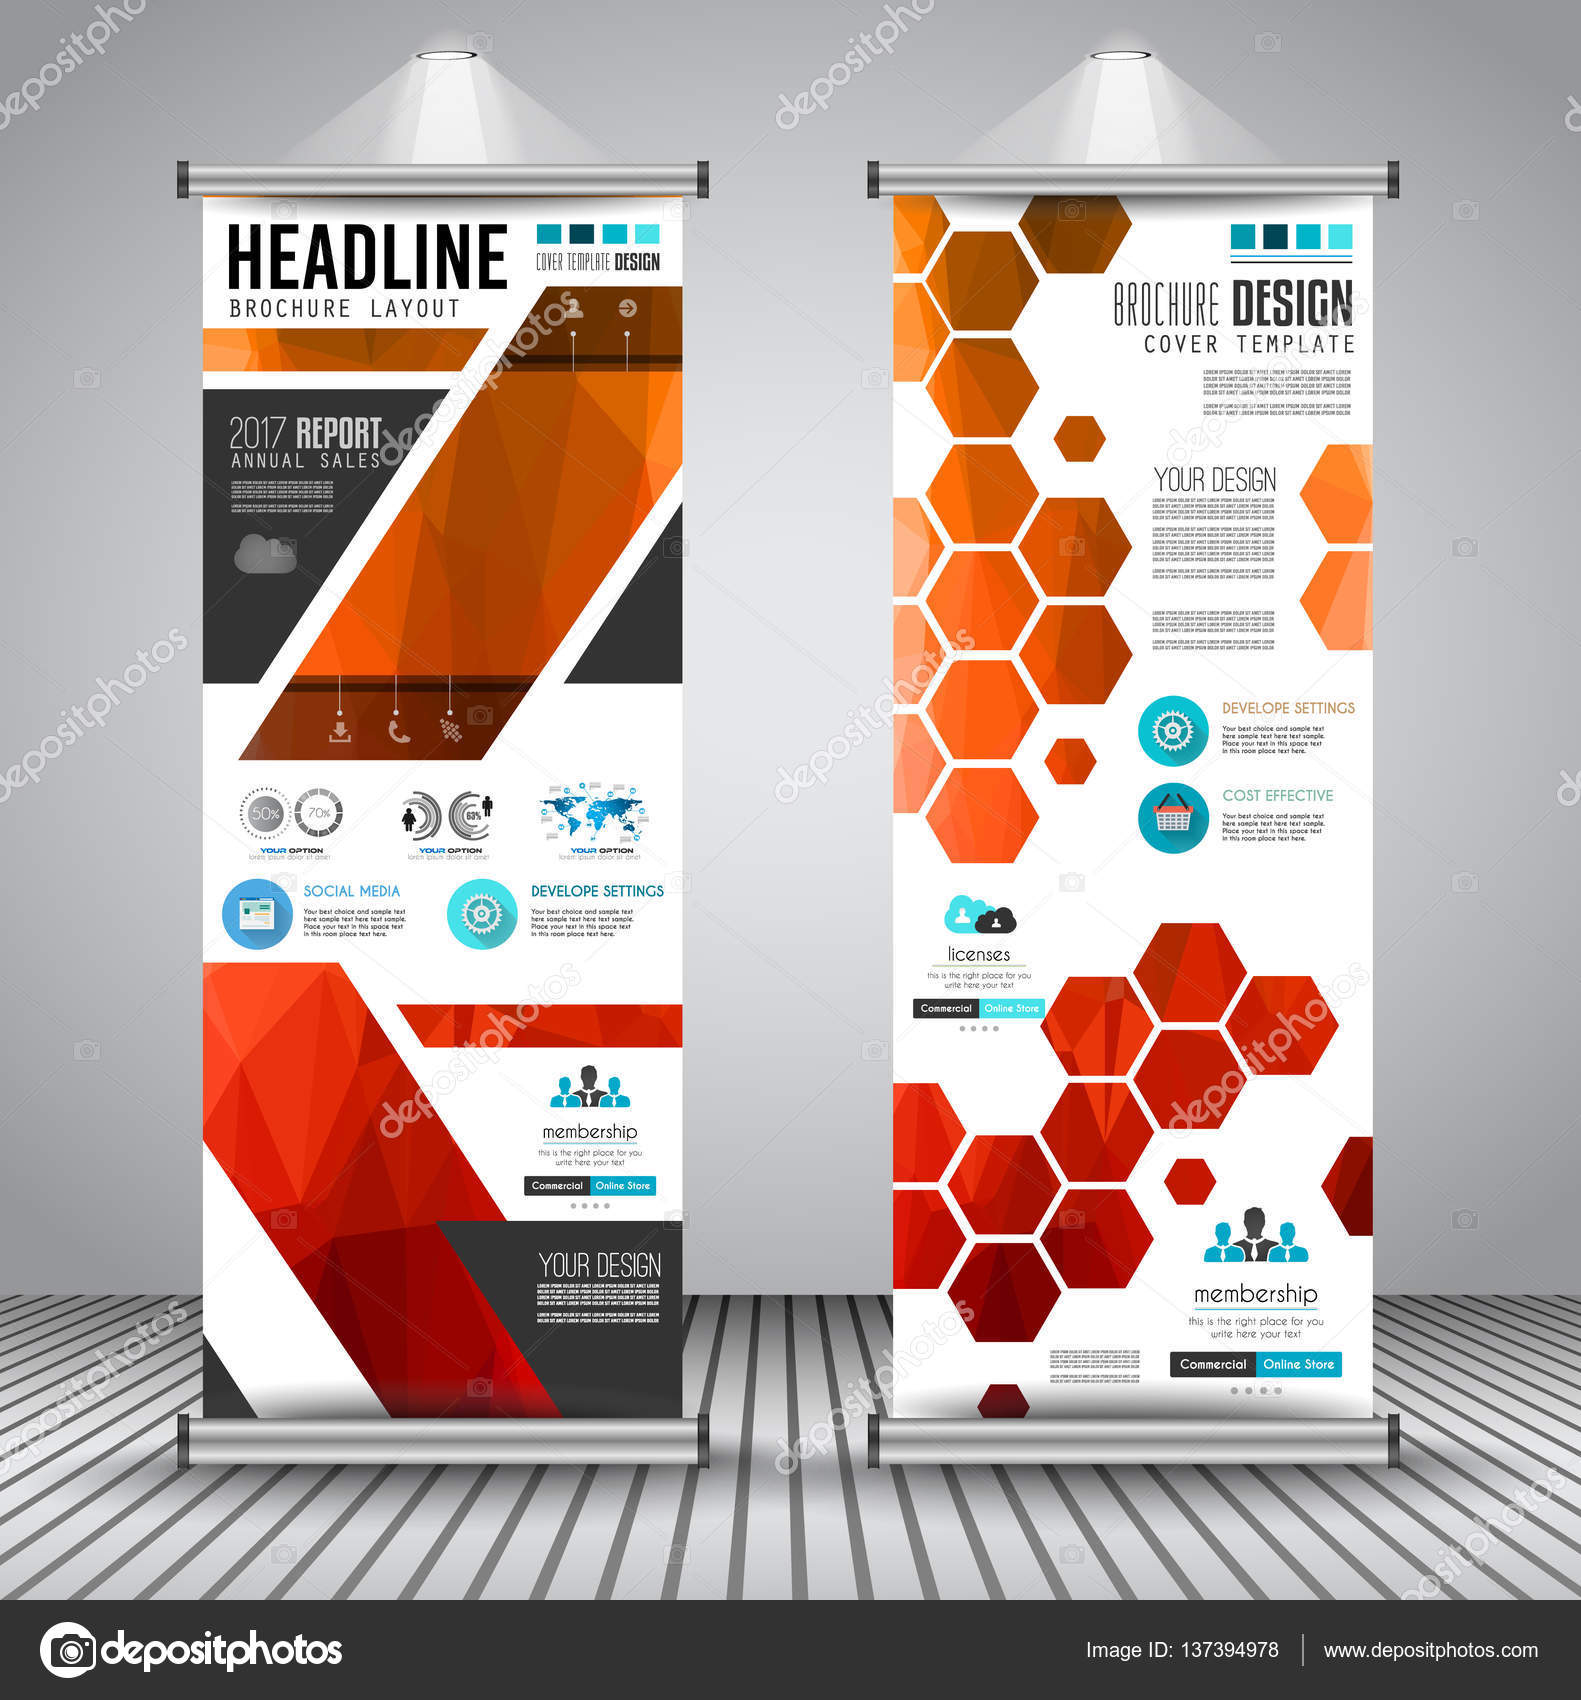 advertisement roll up business flyers stock vector copy davidarts advertisement roll up business flyers or banners vertical design vector template for cover presentation geometrical shape background